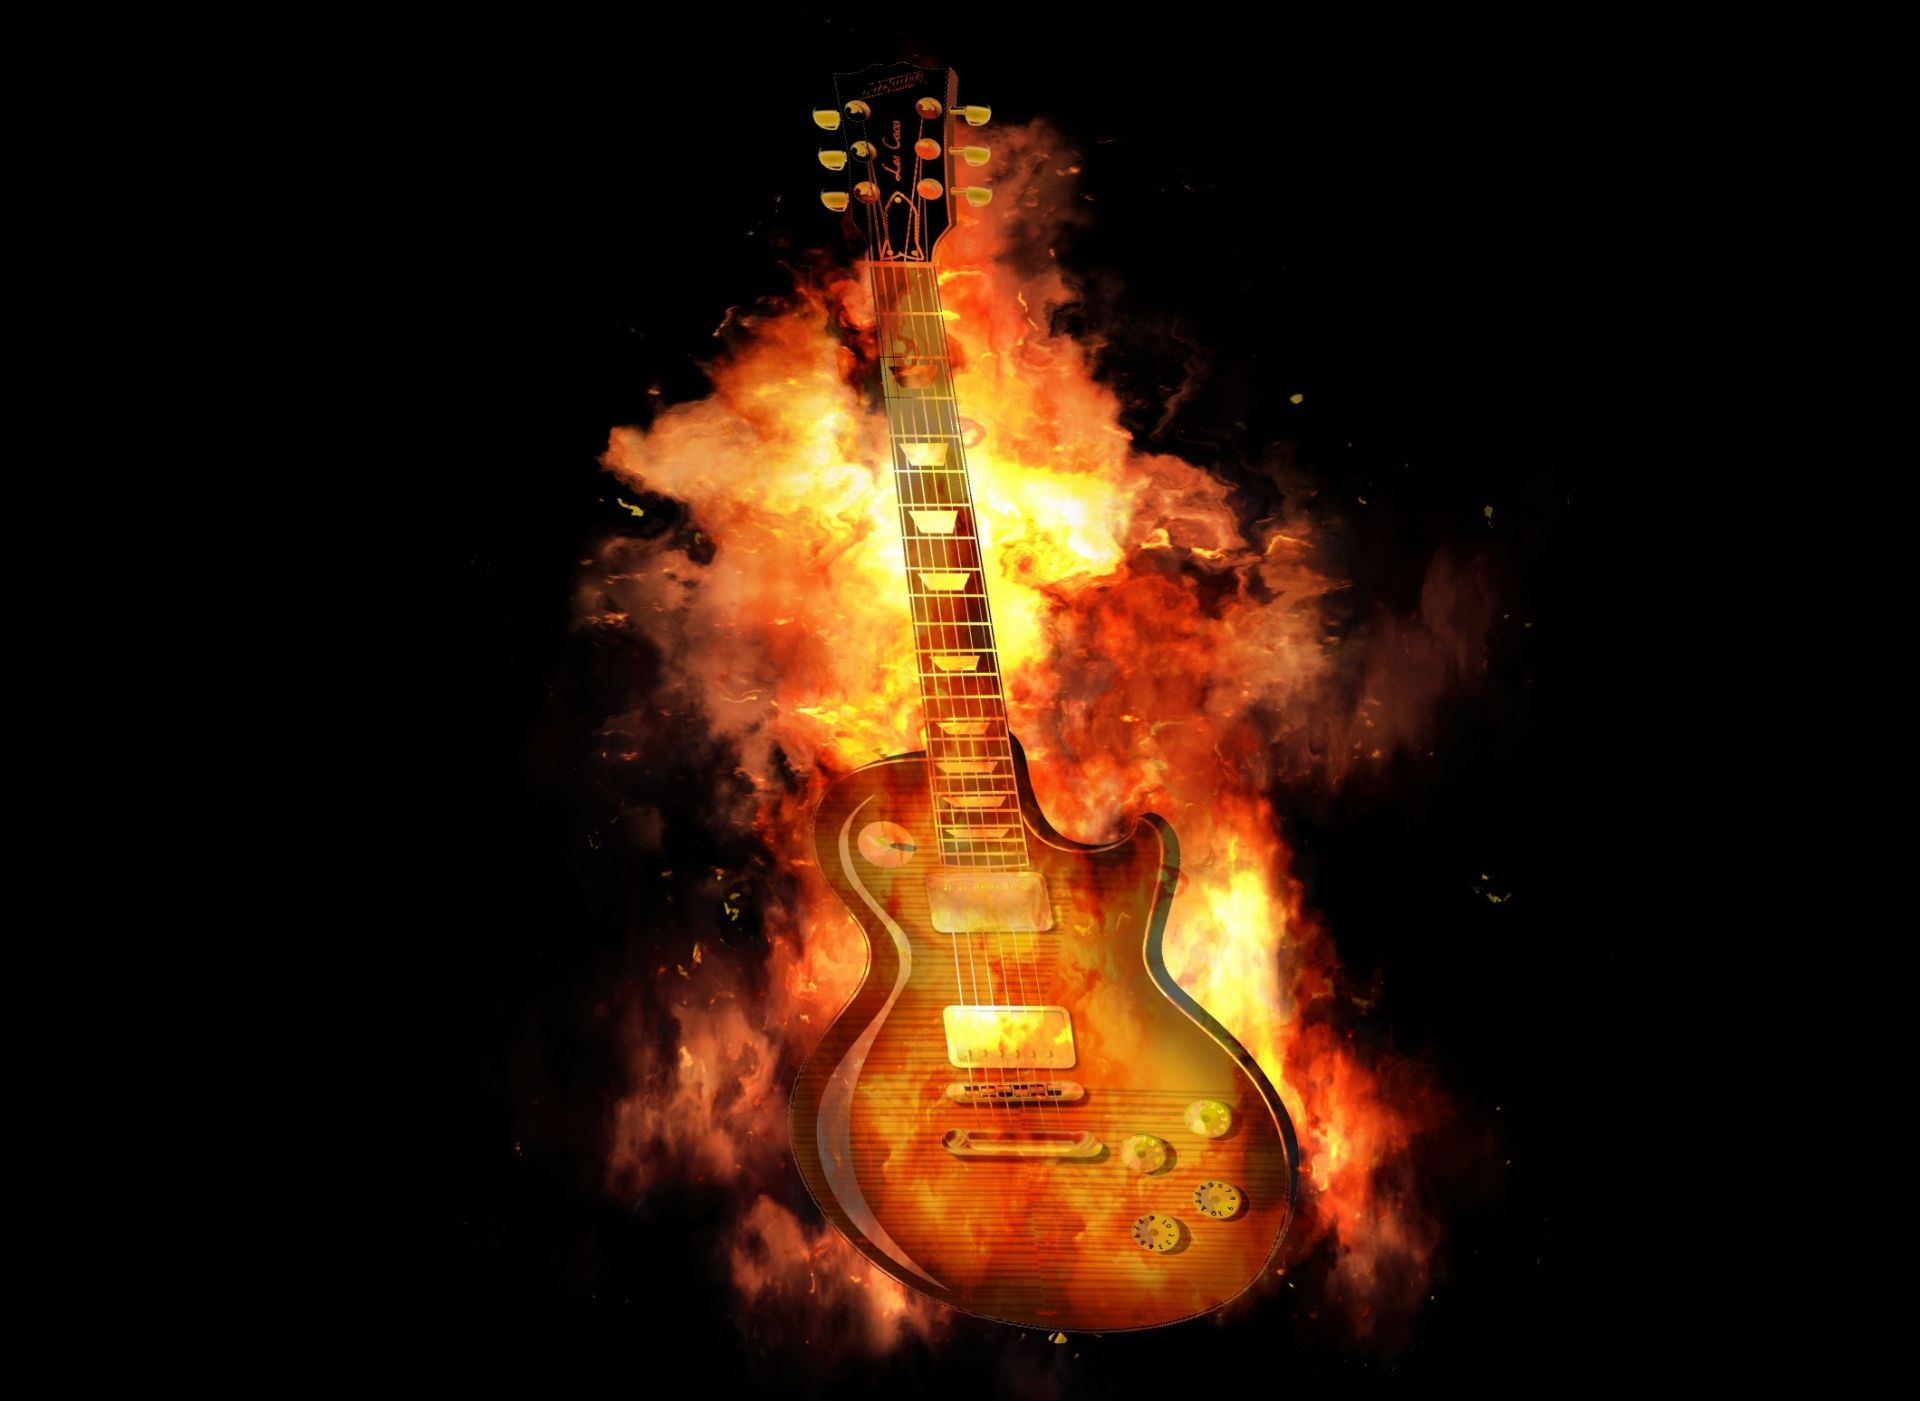 Fire Guitar, Free Download Wallpaper